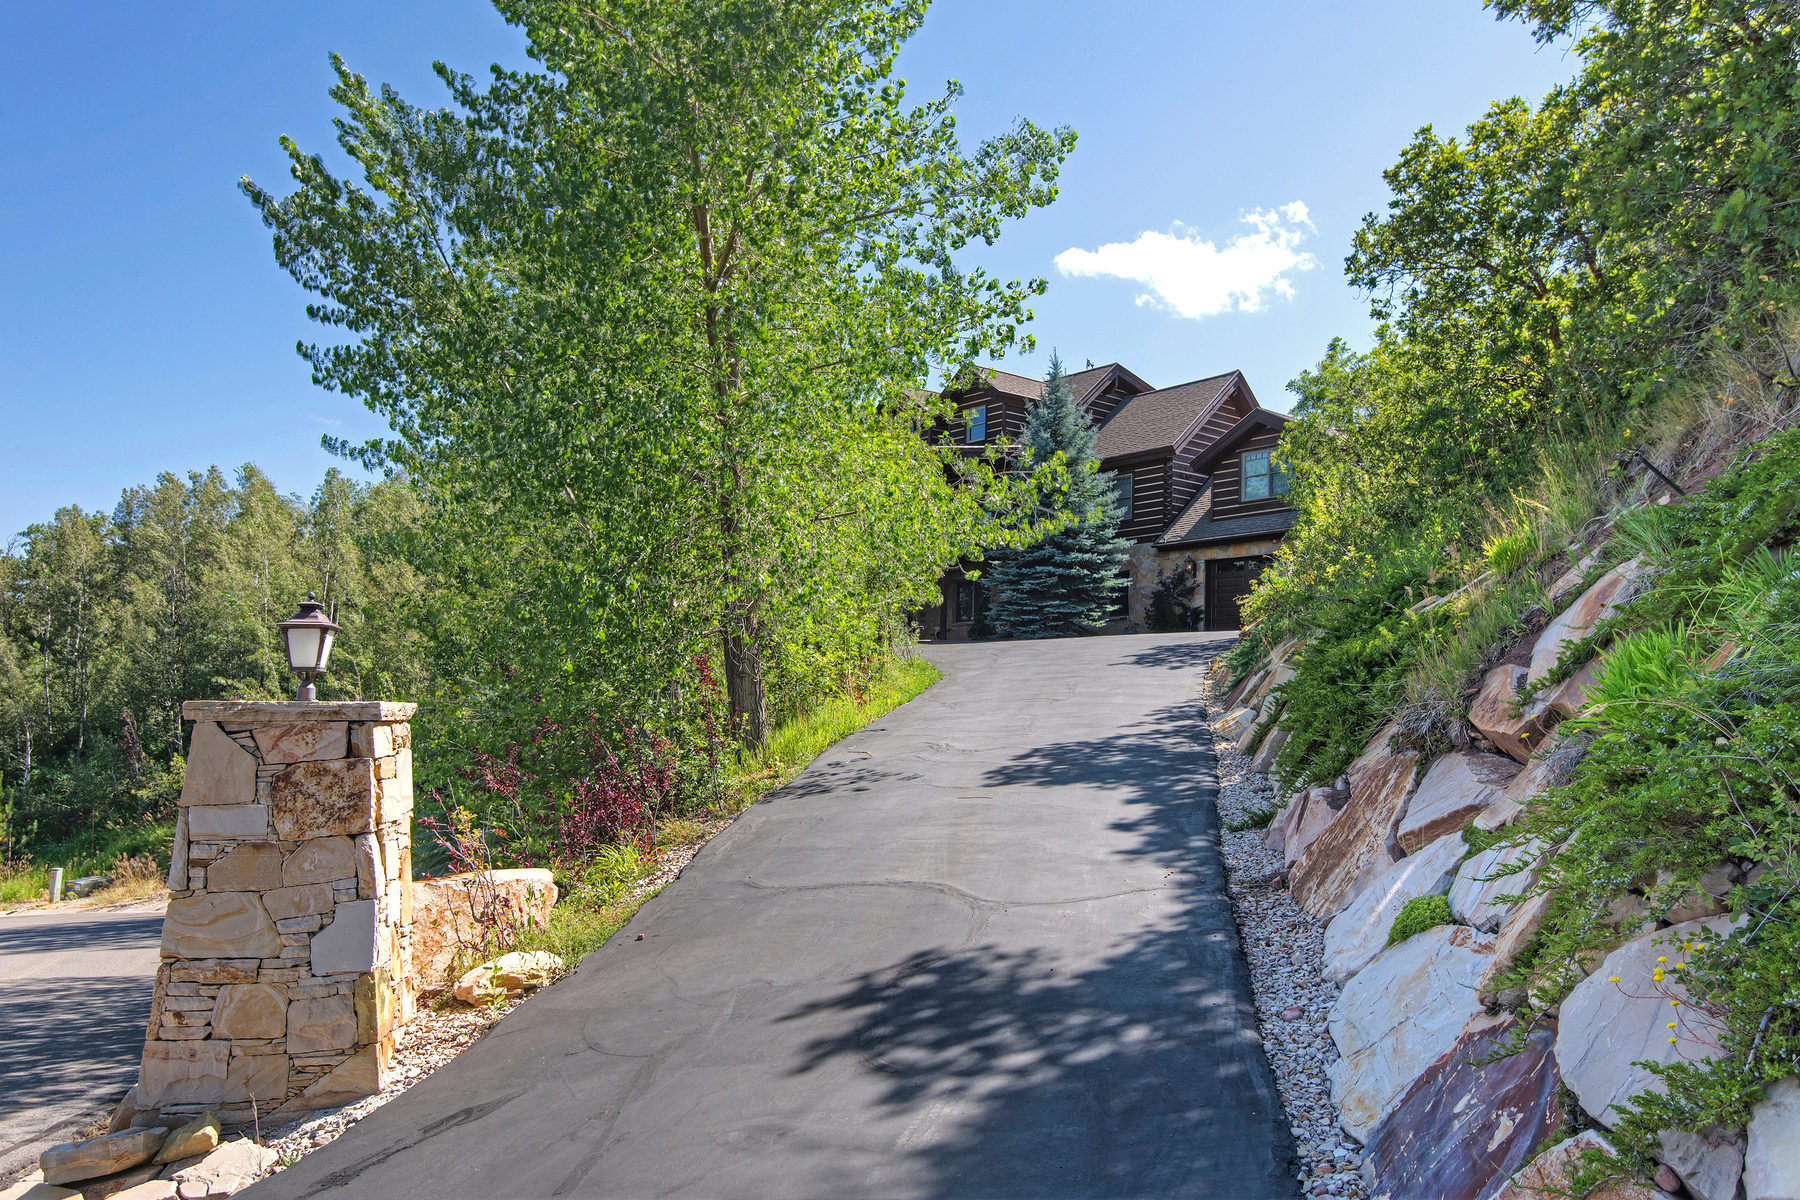 独户住宅 为 销售 在 Spectacular Views in this Gated Hideaway 9197 Canyon View Dr Park City, 犹他州 84098 美国